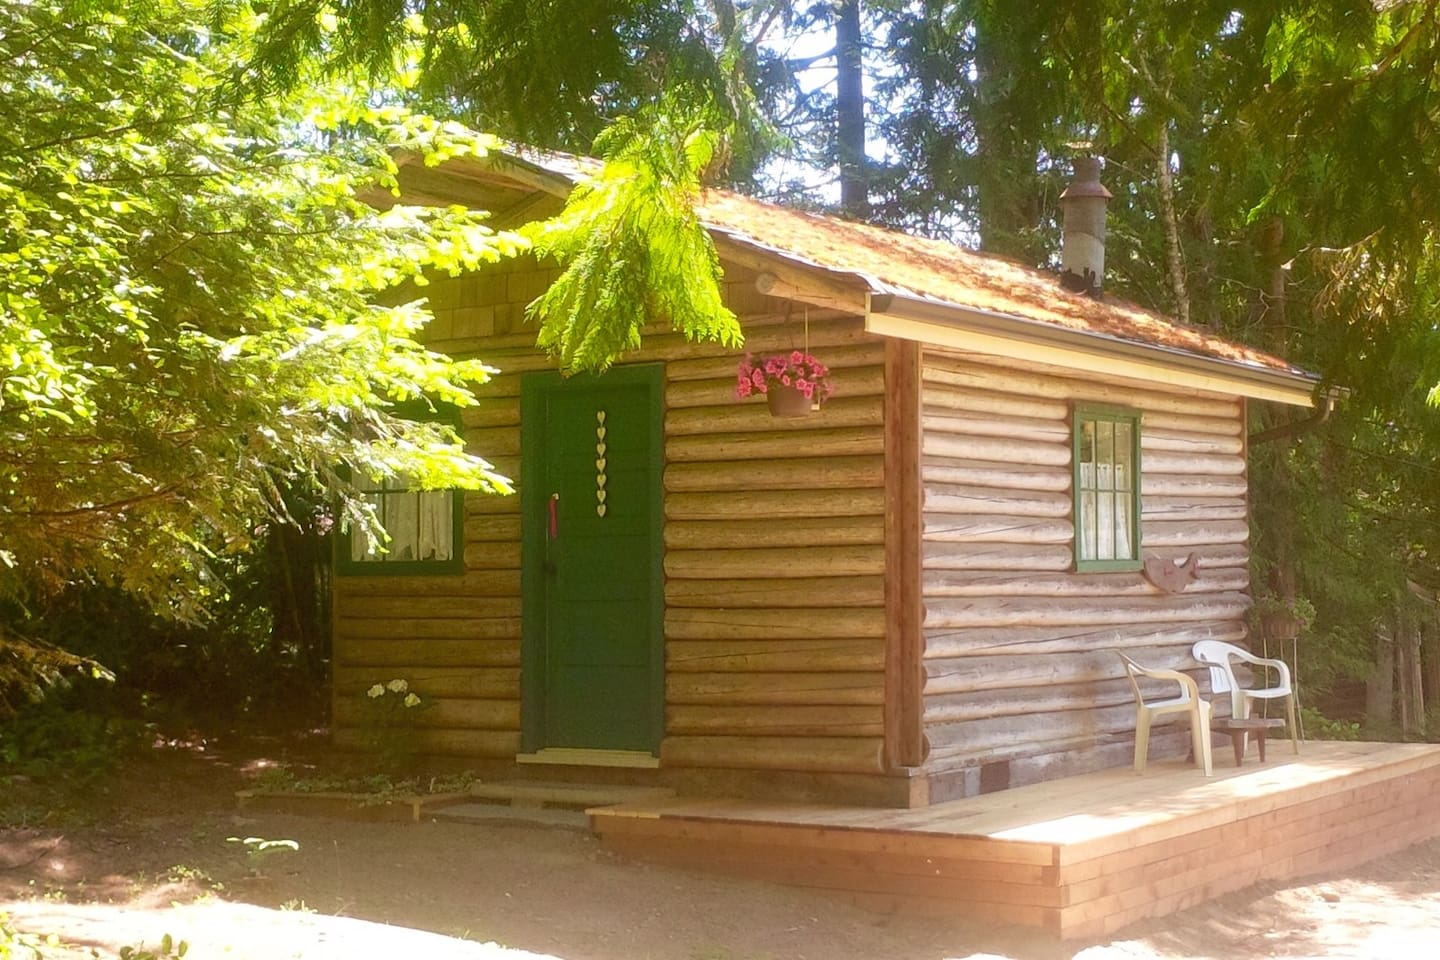 The Lucky Penny Cabin